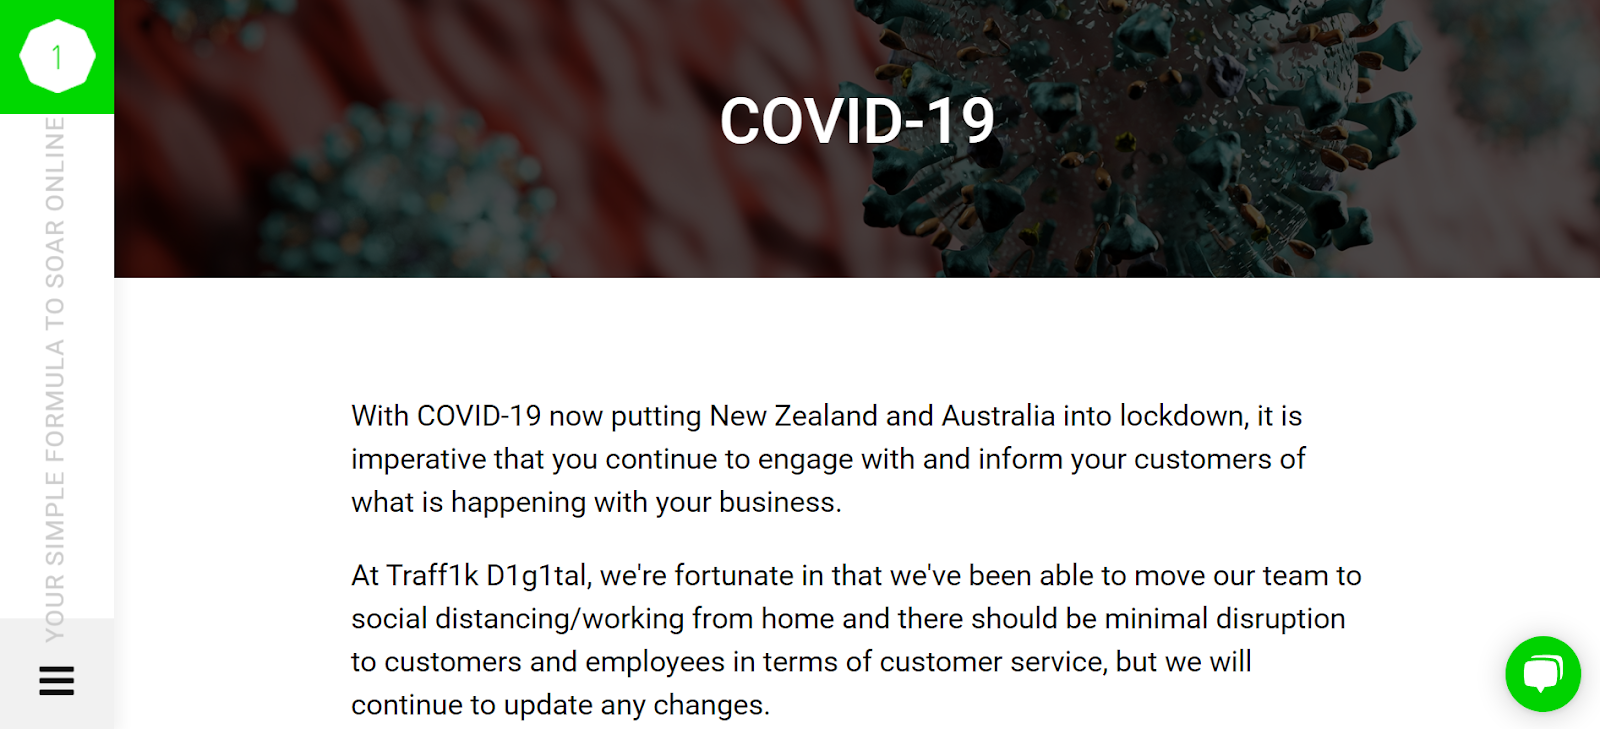 Traff1k D1g1tal - an Australia-based Digital Marketing Agency's response to COVID-19